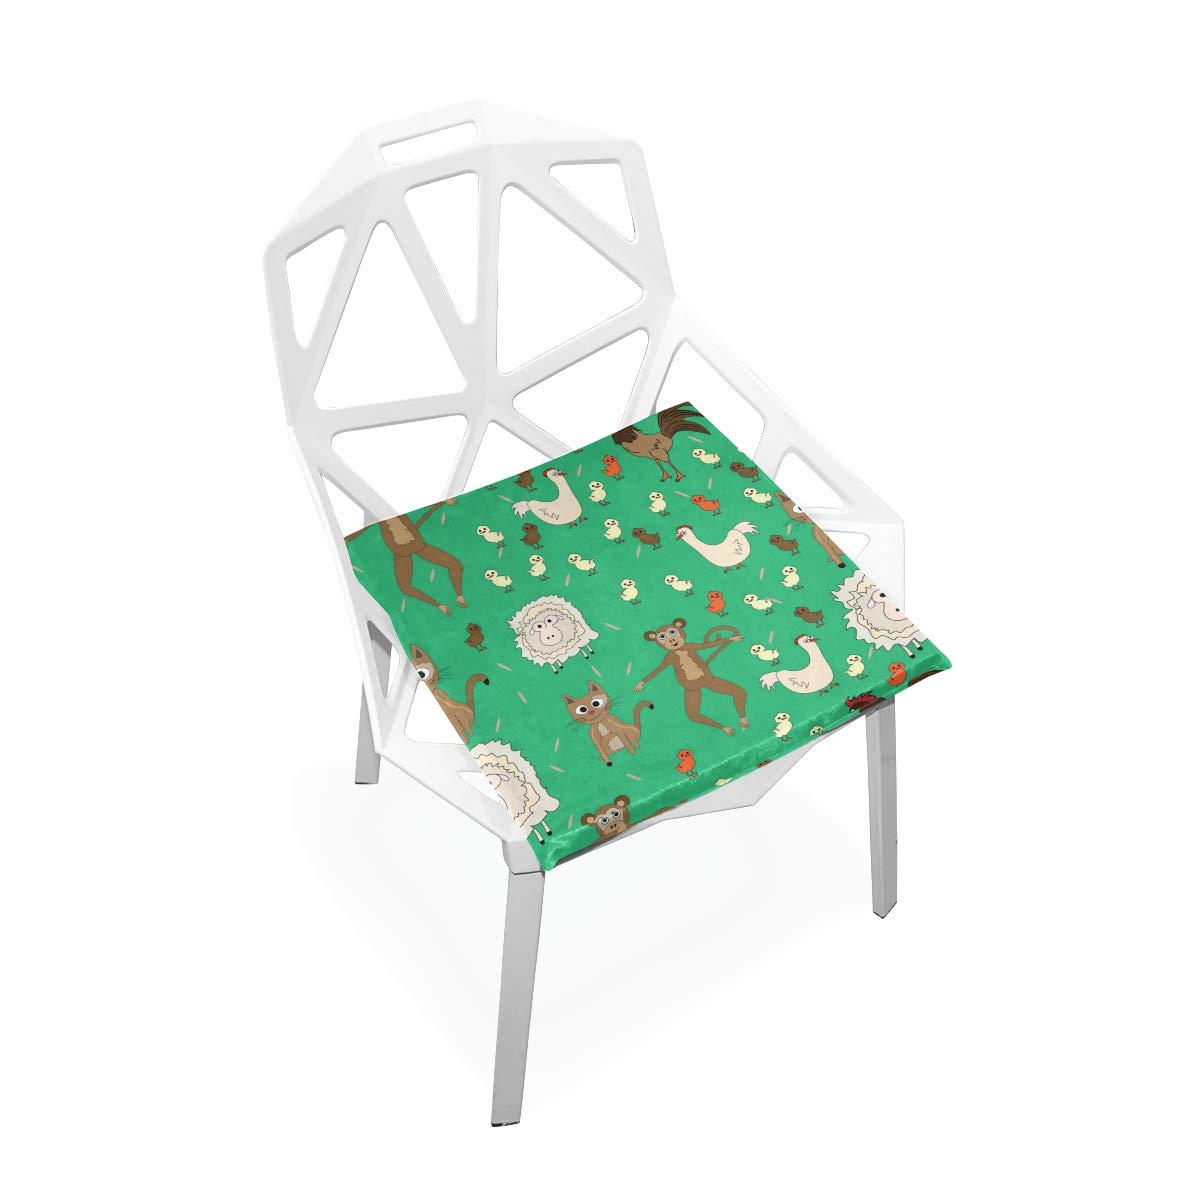 SUABO PLAO Chair Pads Pattern with Animals Soft Seat Cushions Nonslip Chair Mats for Dining, Patio, Camping, Kitchen Chairs, Home Decor